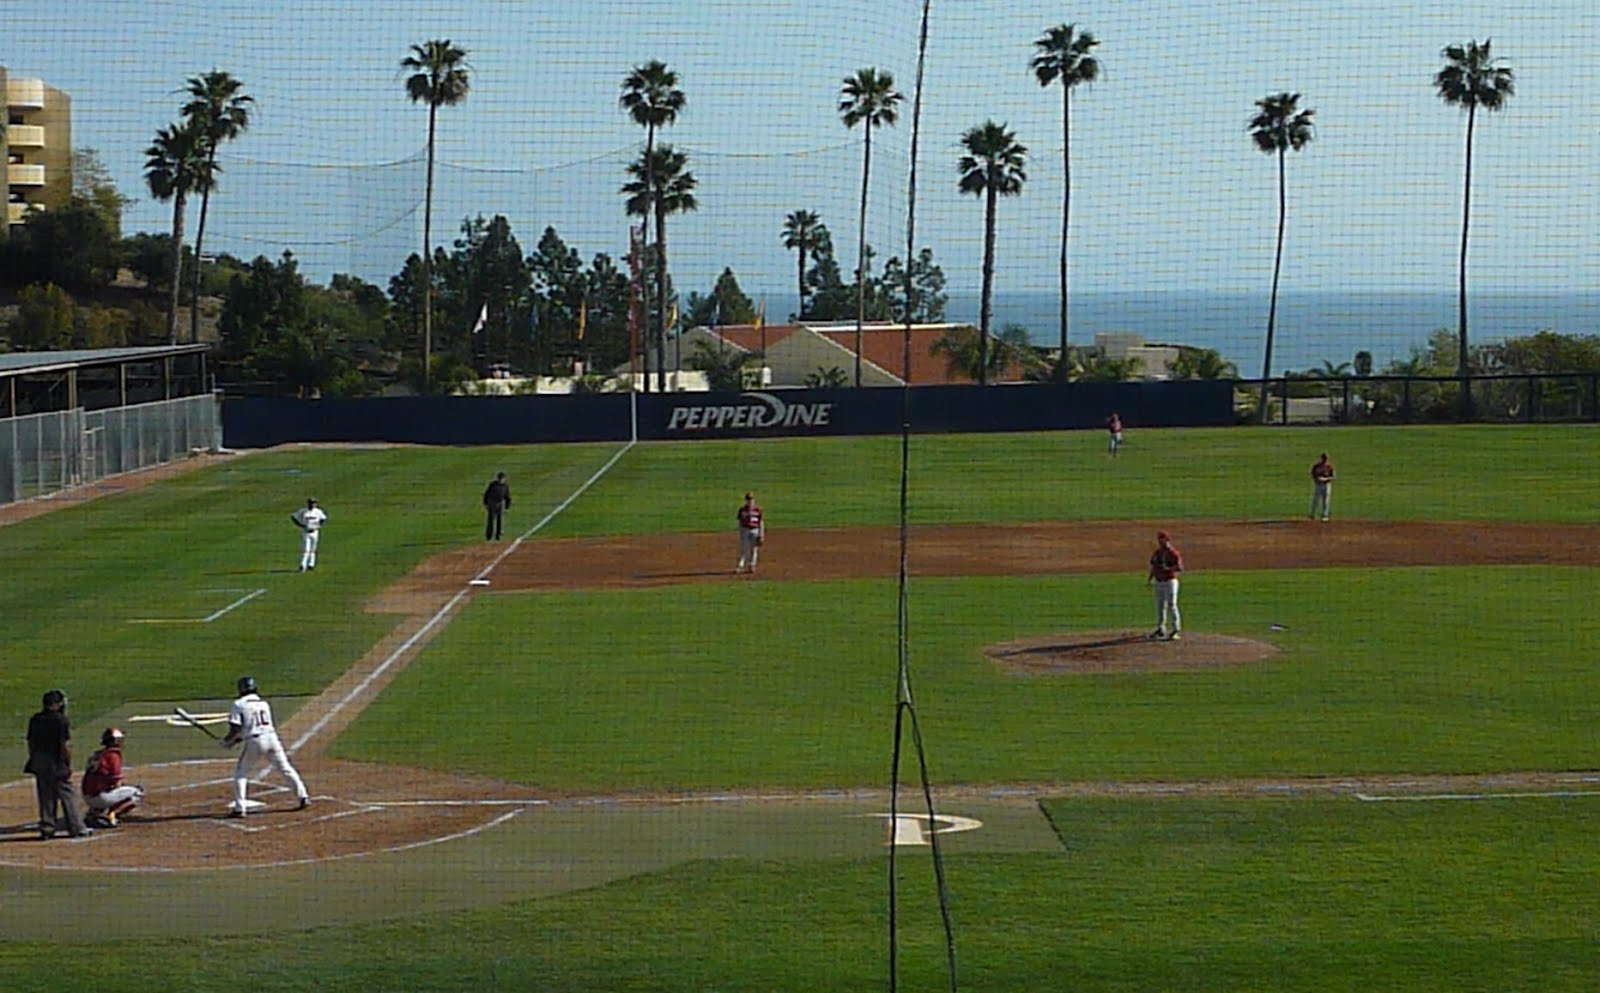 Sports Road Trips: USC Trojans 2 At Pepperdine Waves 7